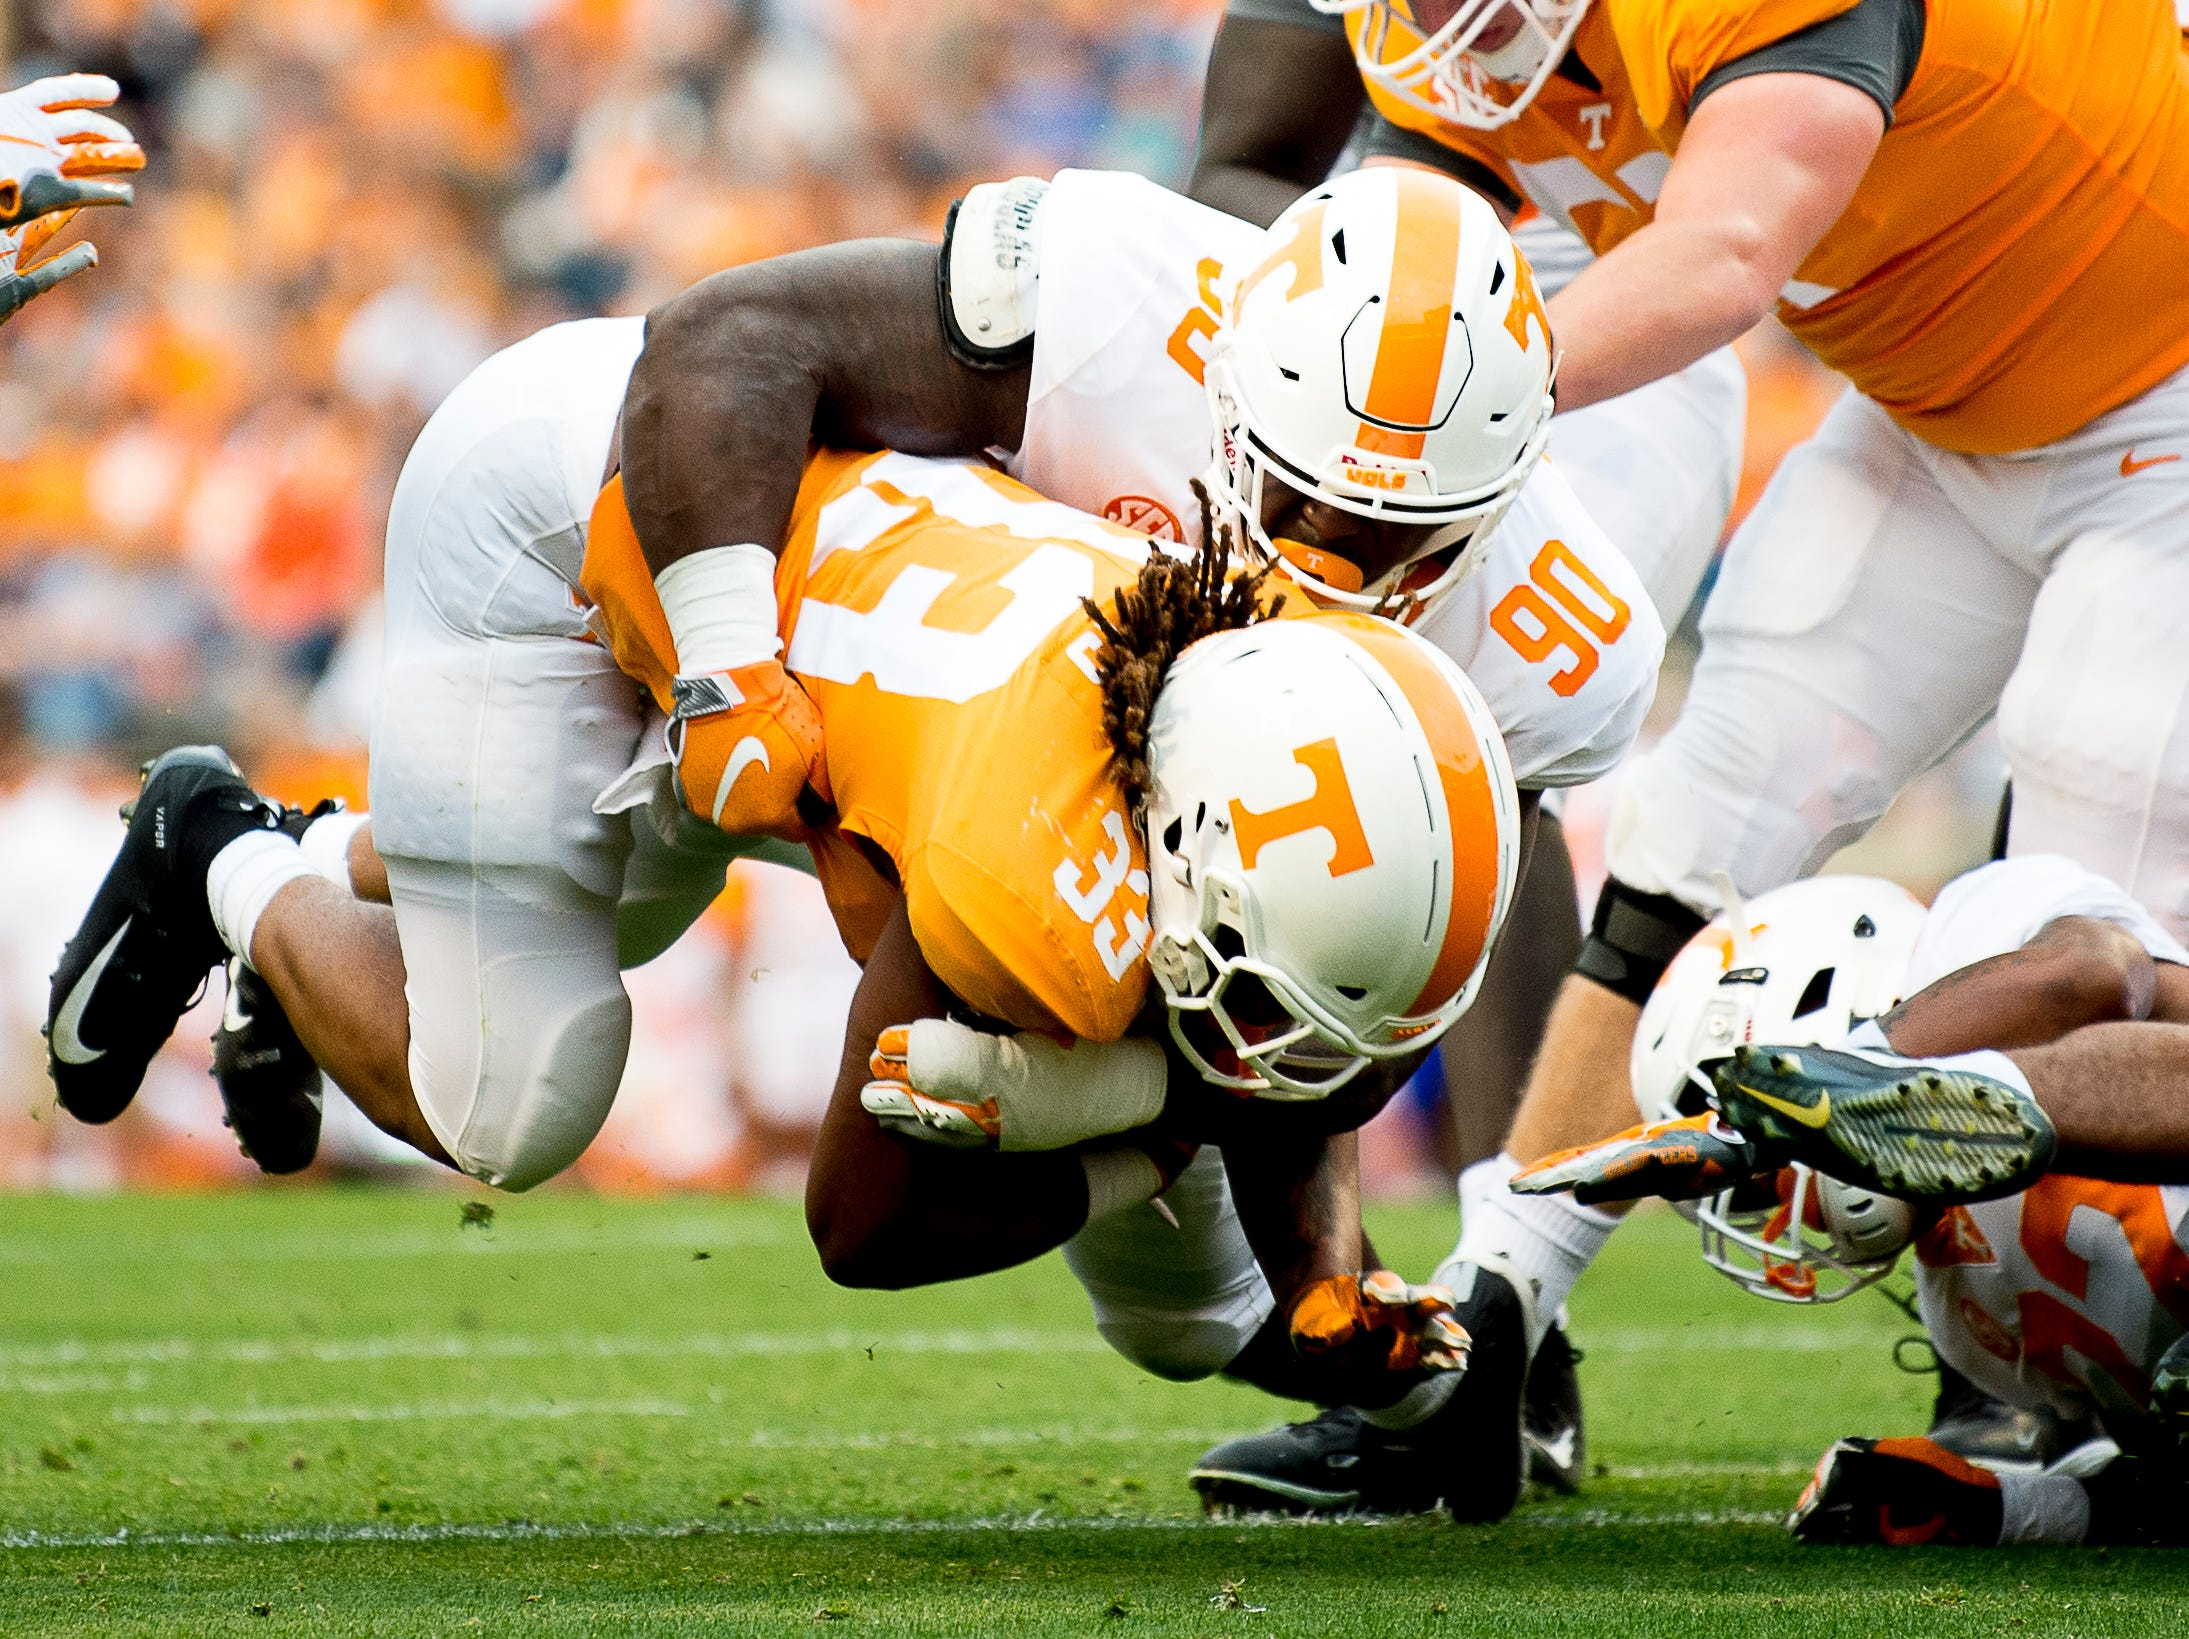 Tennessee running back Ramsey Hailey (35) is taken down by Tennessee defensive lineman Greg Emerson (90) during the Tennessee Spring Game at Neyland Stadium in Knoxville, Tennessee on Saturday, April 13, 2019.